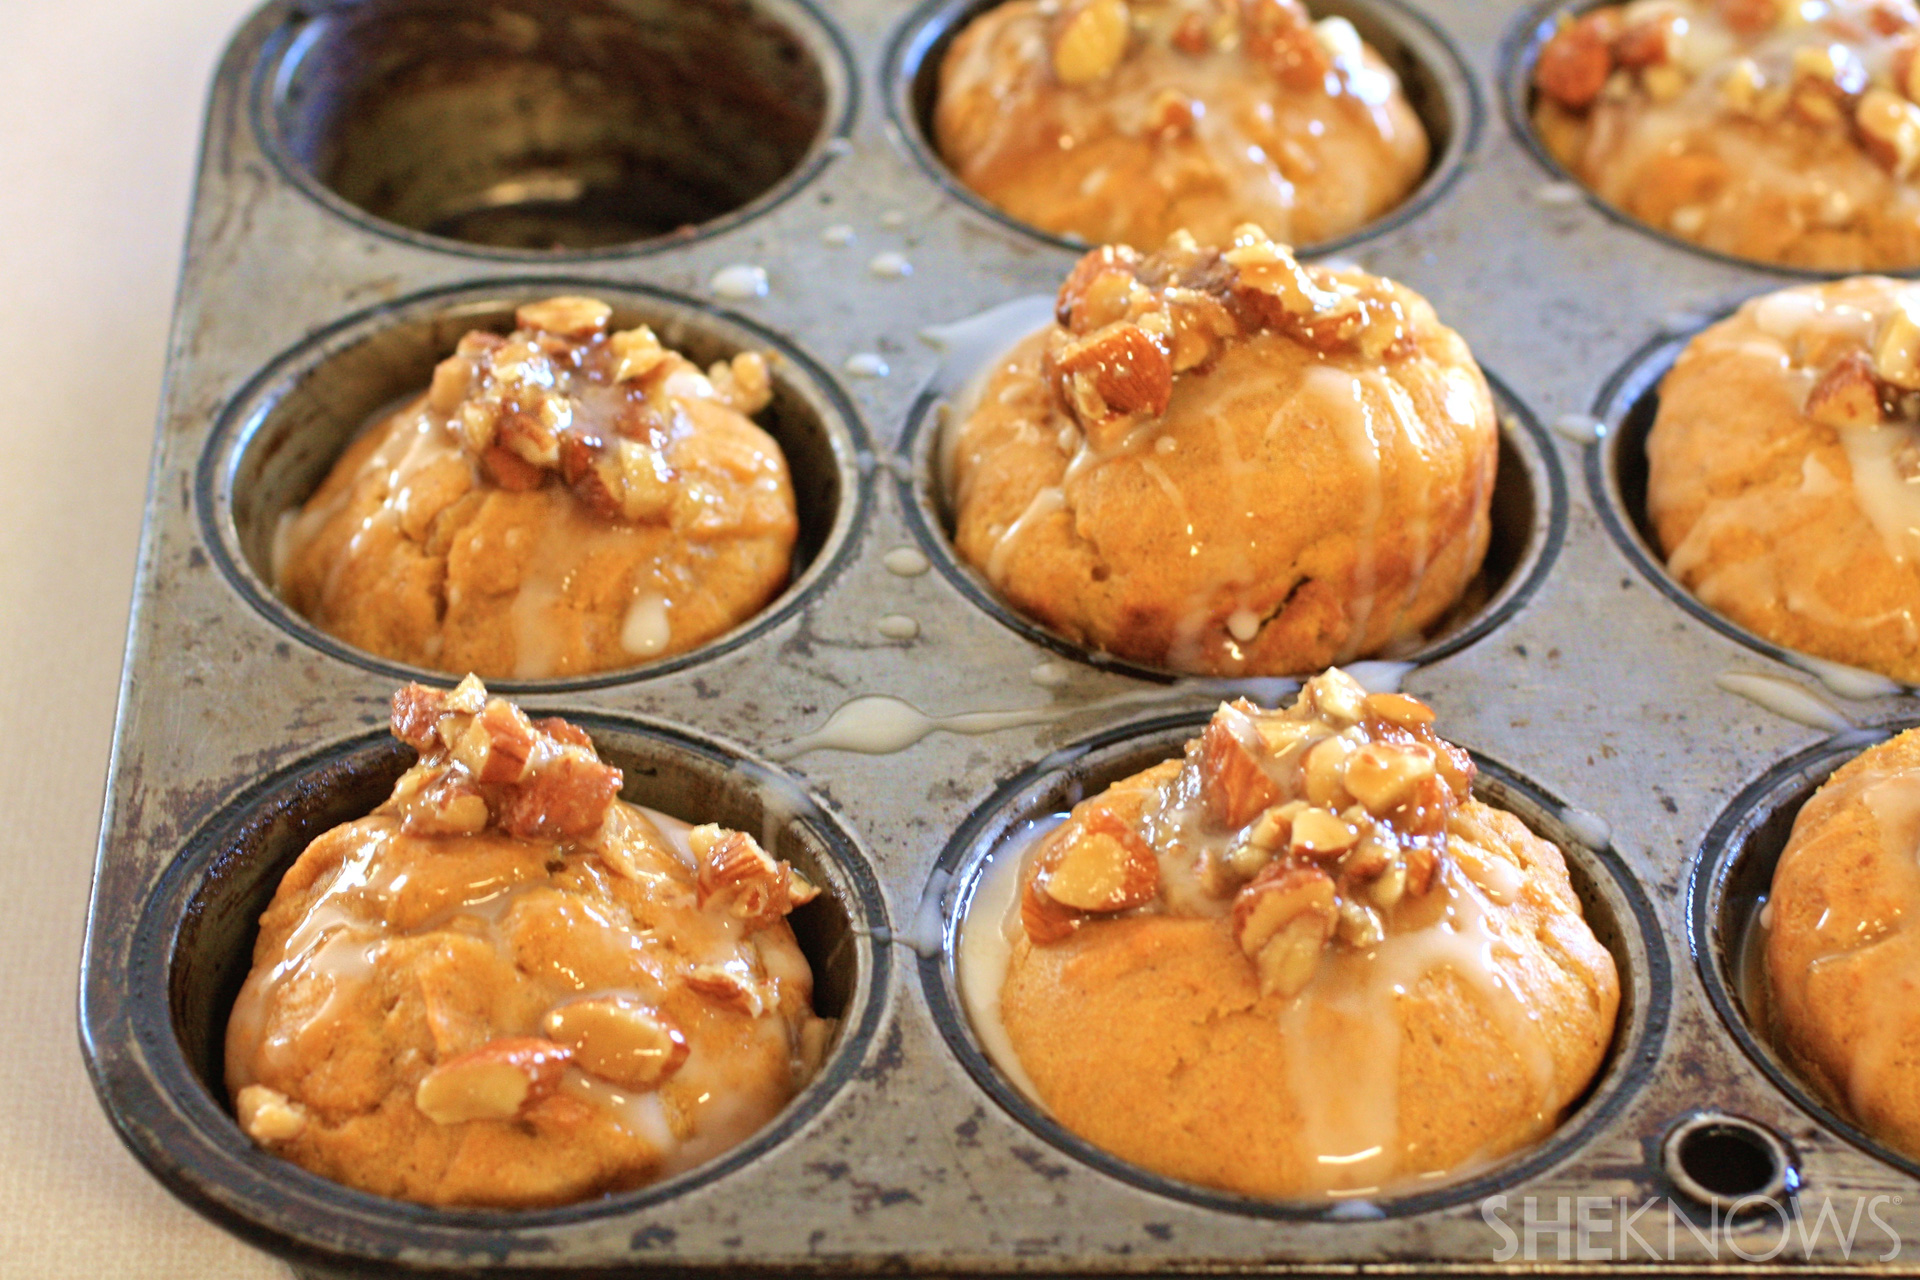 Pumpkin-chai muffins with vanilla glaze and maple-coated almonds